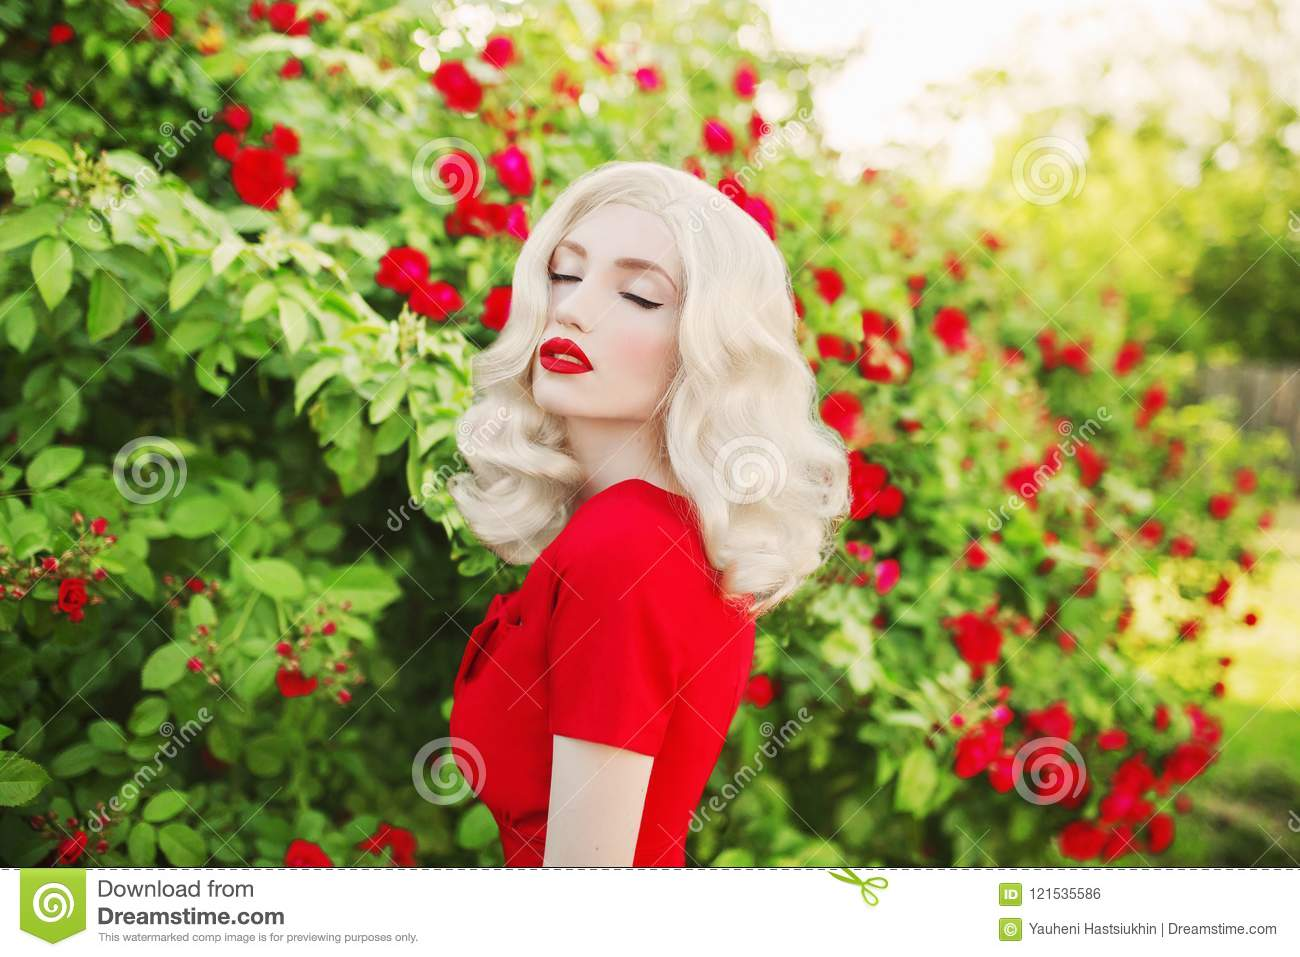 Valentines Day background. Young stunning girl with red lips in stylish dress in beautiful summer roses garden.